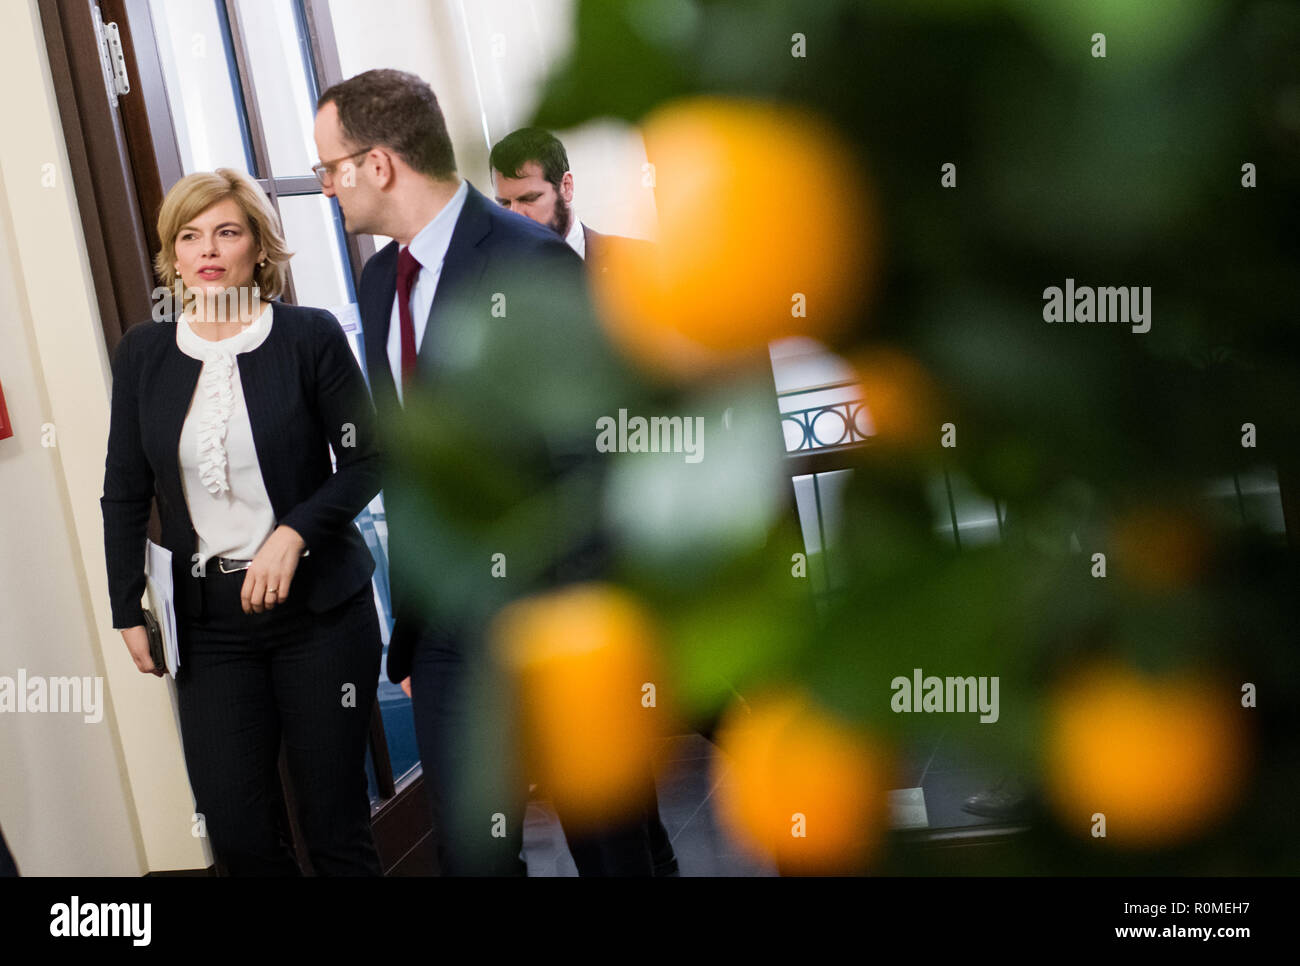 Berlin, Germany. 06th Nov, 2018. Jens Spahn (r, CDU), Federal Minister of Health, and Julia Klöckner (CDU), Federal Minister of Food and Agriculture, come to a press conference at the Federal Congress on School Catering on the occasion of the presentation of a study by the German Society for Nutrition on cost and price structures in school catering. More than three million pupils at all-day schools eat lunch every day at school. Credit: Bernd von Jutrczenka/dpa/Alamy Live News - Stock Image